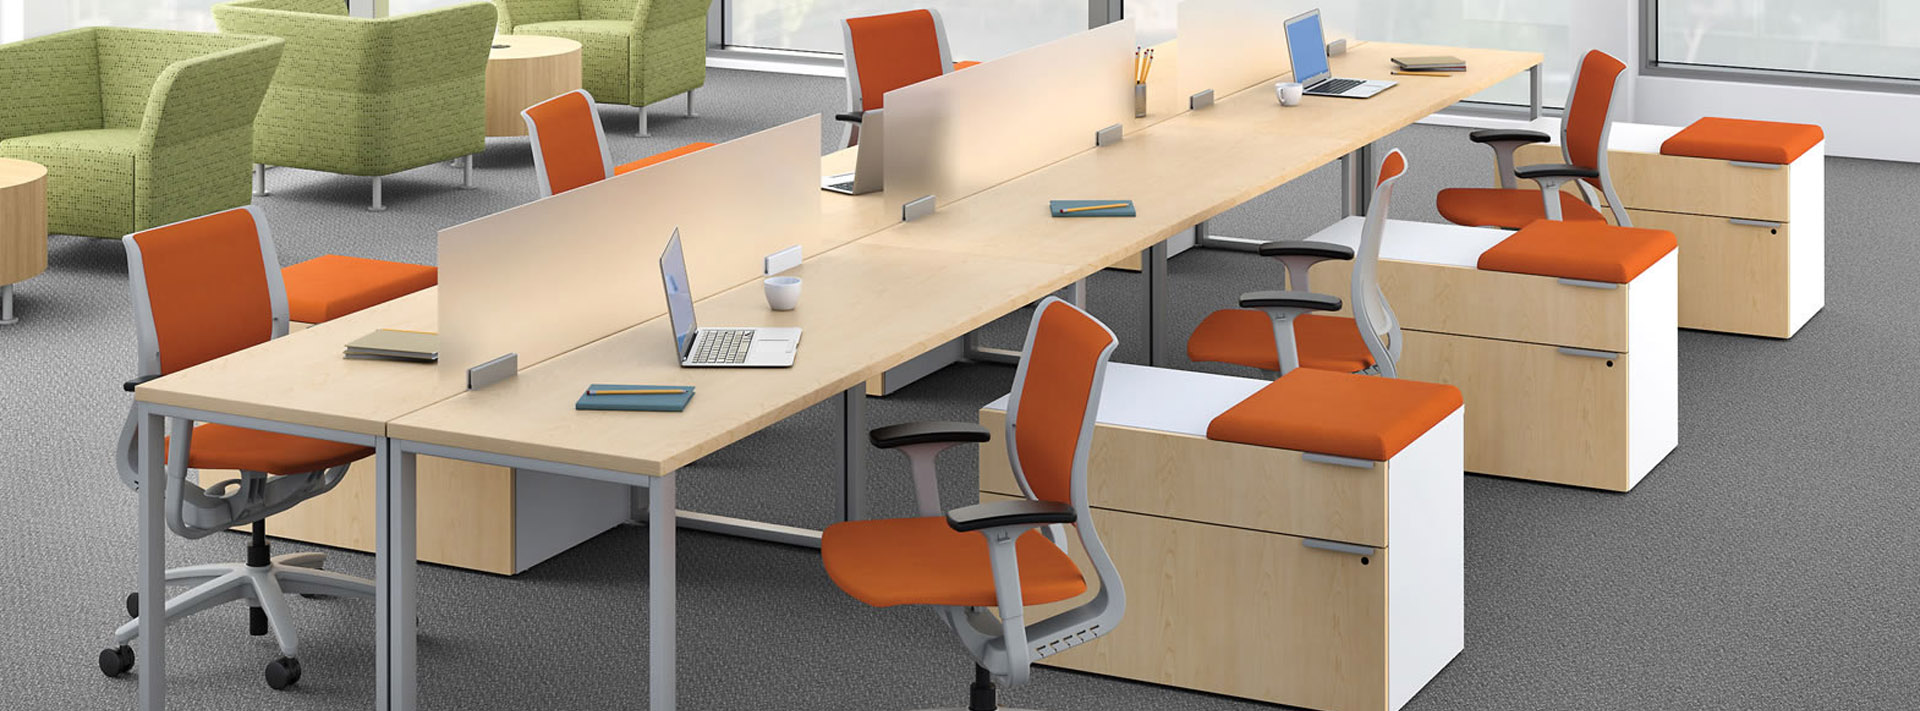 39 Office Furniture Manufacturers In Delhi Ncr Top Modular Office Furniture Systems